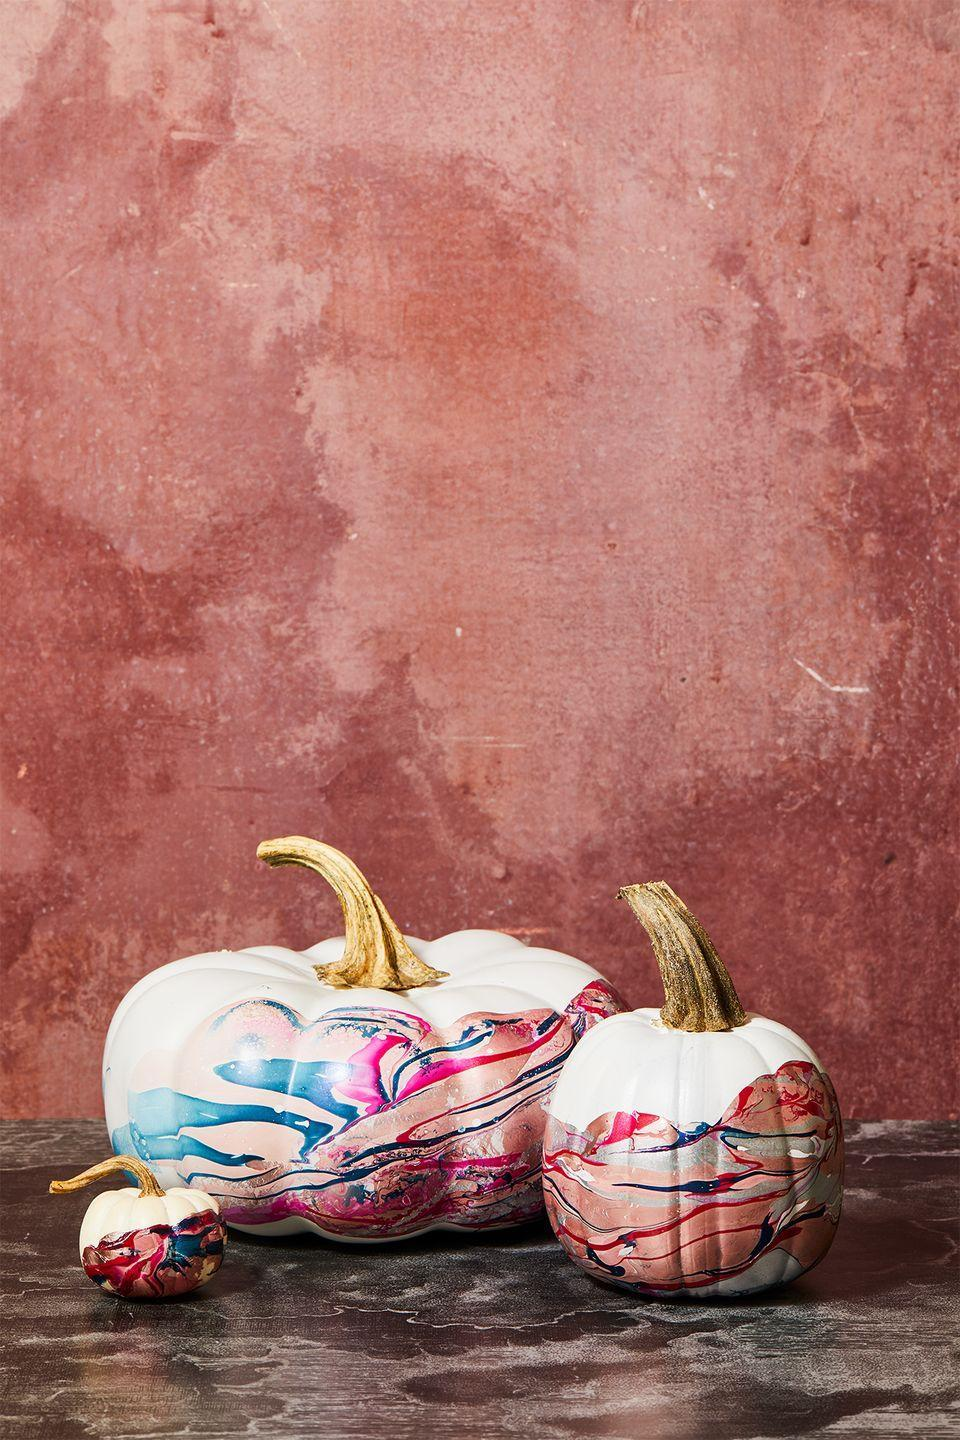 """<p>No paint? No problem. Grab a container filled with water and your favorite nail polish colors to create this on-trend design. </p><p><em><a href=""""https://www.goodhousekeeping.com/holidays/halloween-ideas/a34348351/how-to-marbled-pumpkins-with-nail-polish/"""" rel=""""nofollow noopener"""" target=""""_blank"""" data-ylk=""""slk:Get the tutorial »"""" class=""""link rapid-noclick-resp"""">Get the tutorial »</a></em></p>"""